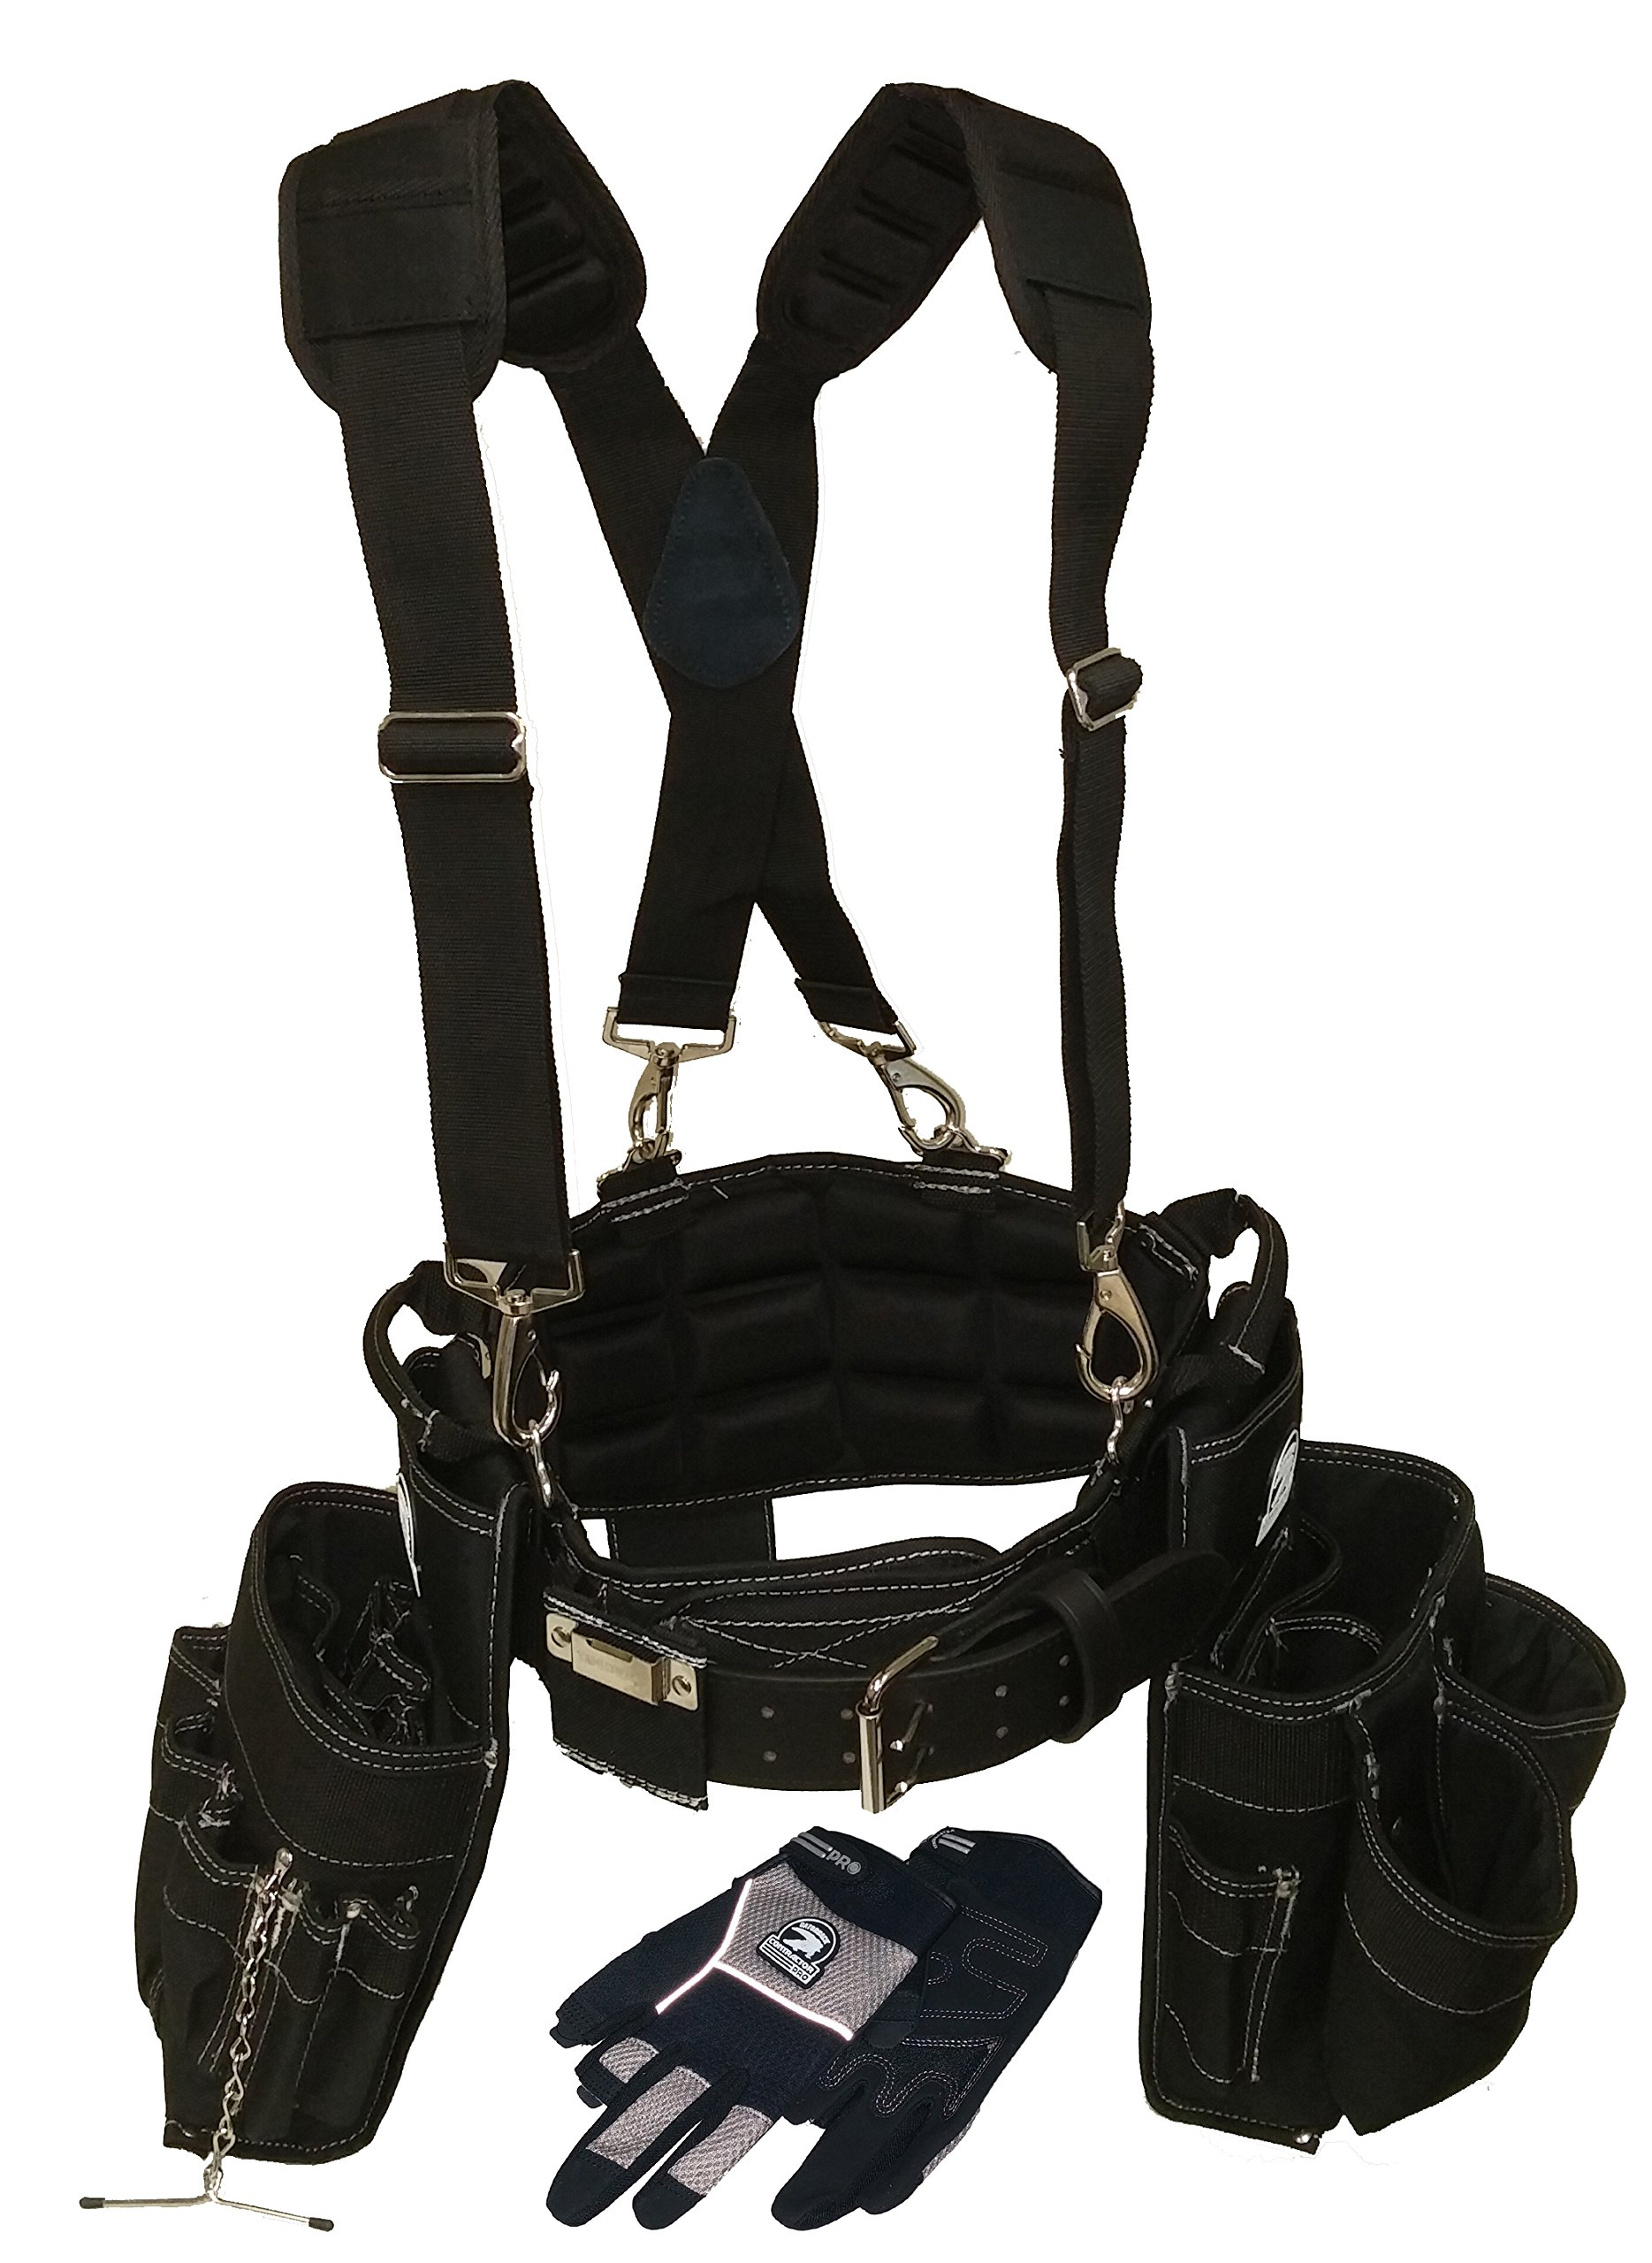 Gatorback Electricians Combo Deluxe Package (Tool Belt, Suspenders, Gloves, Bucket Tote) Ventilated Back Support Belt w/ Suspenders and Extras. For Electricians, Carpenters, Framer (Large 35''-39'')